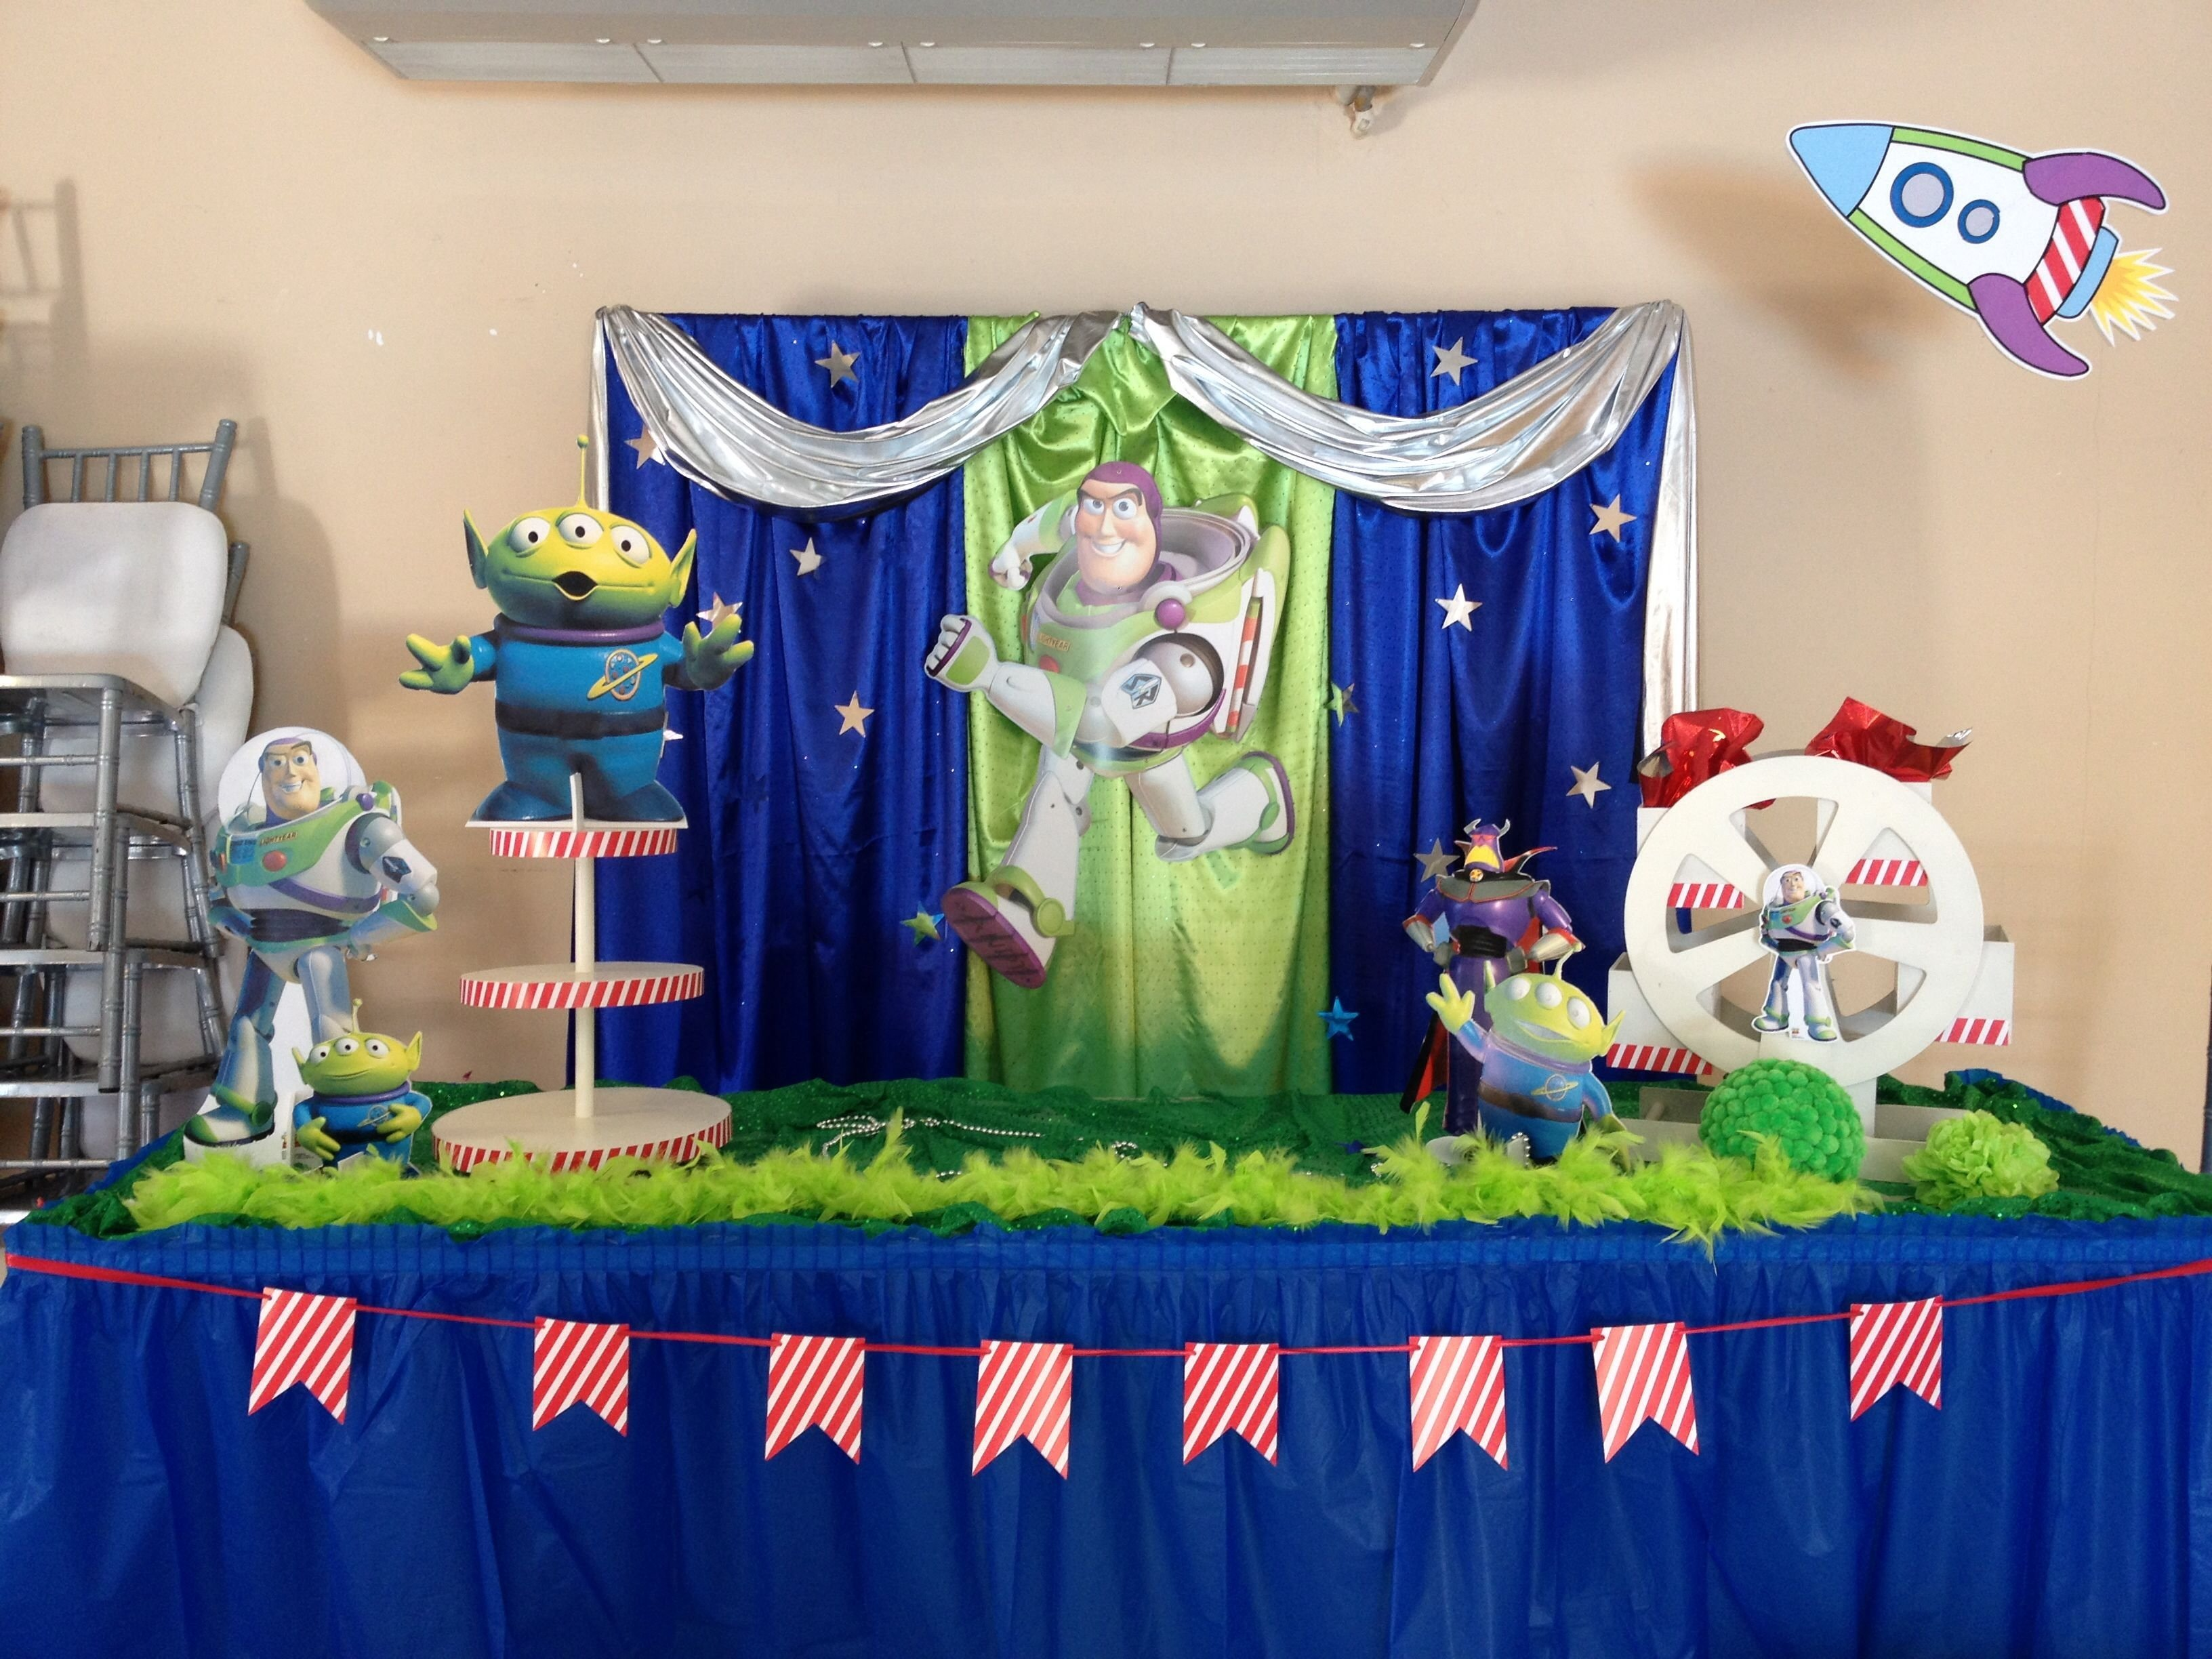 10 Most Recommended Buzz Lightyear Birthday Party Ideas buzz light year party ideaspink and blue buzz pinterest